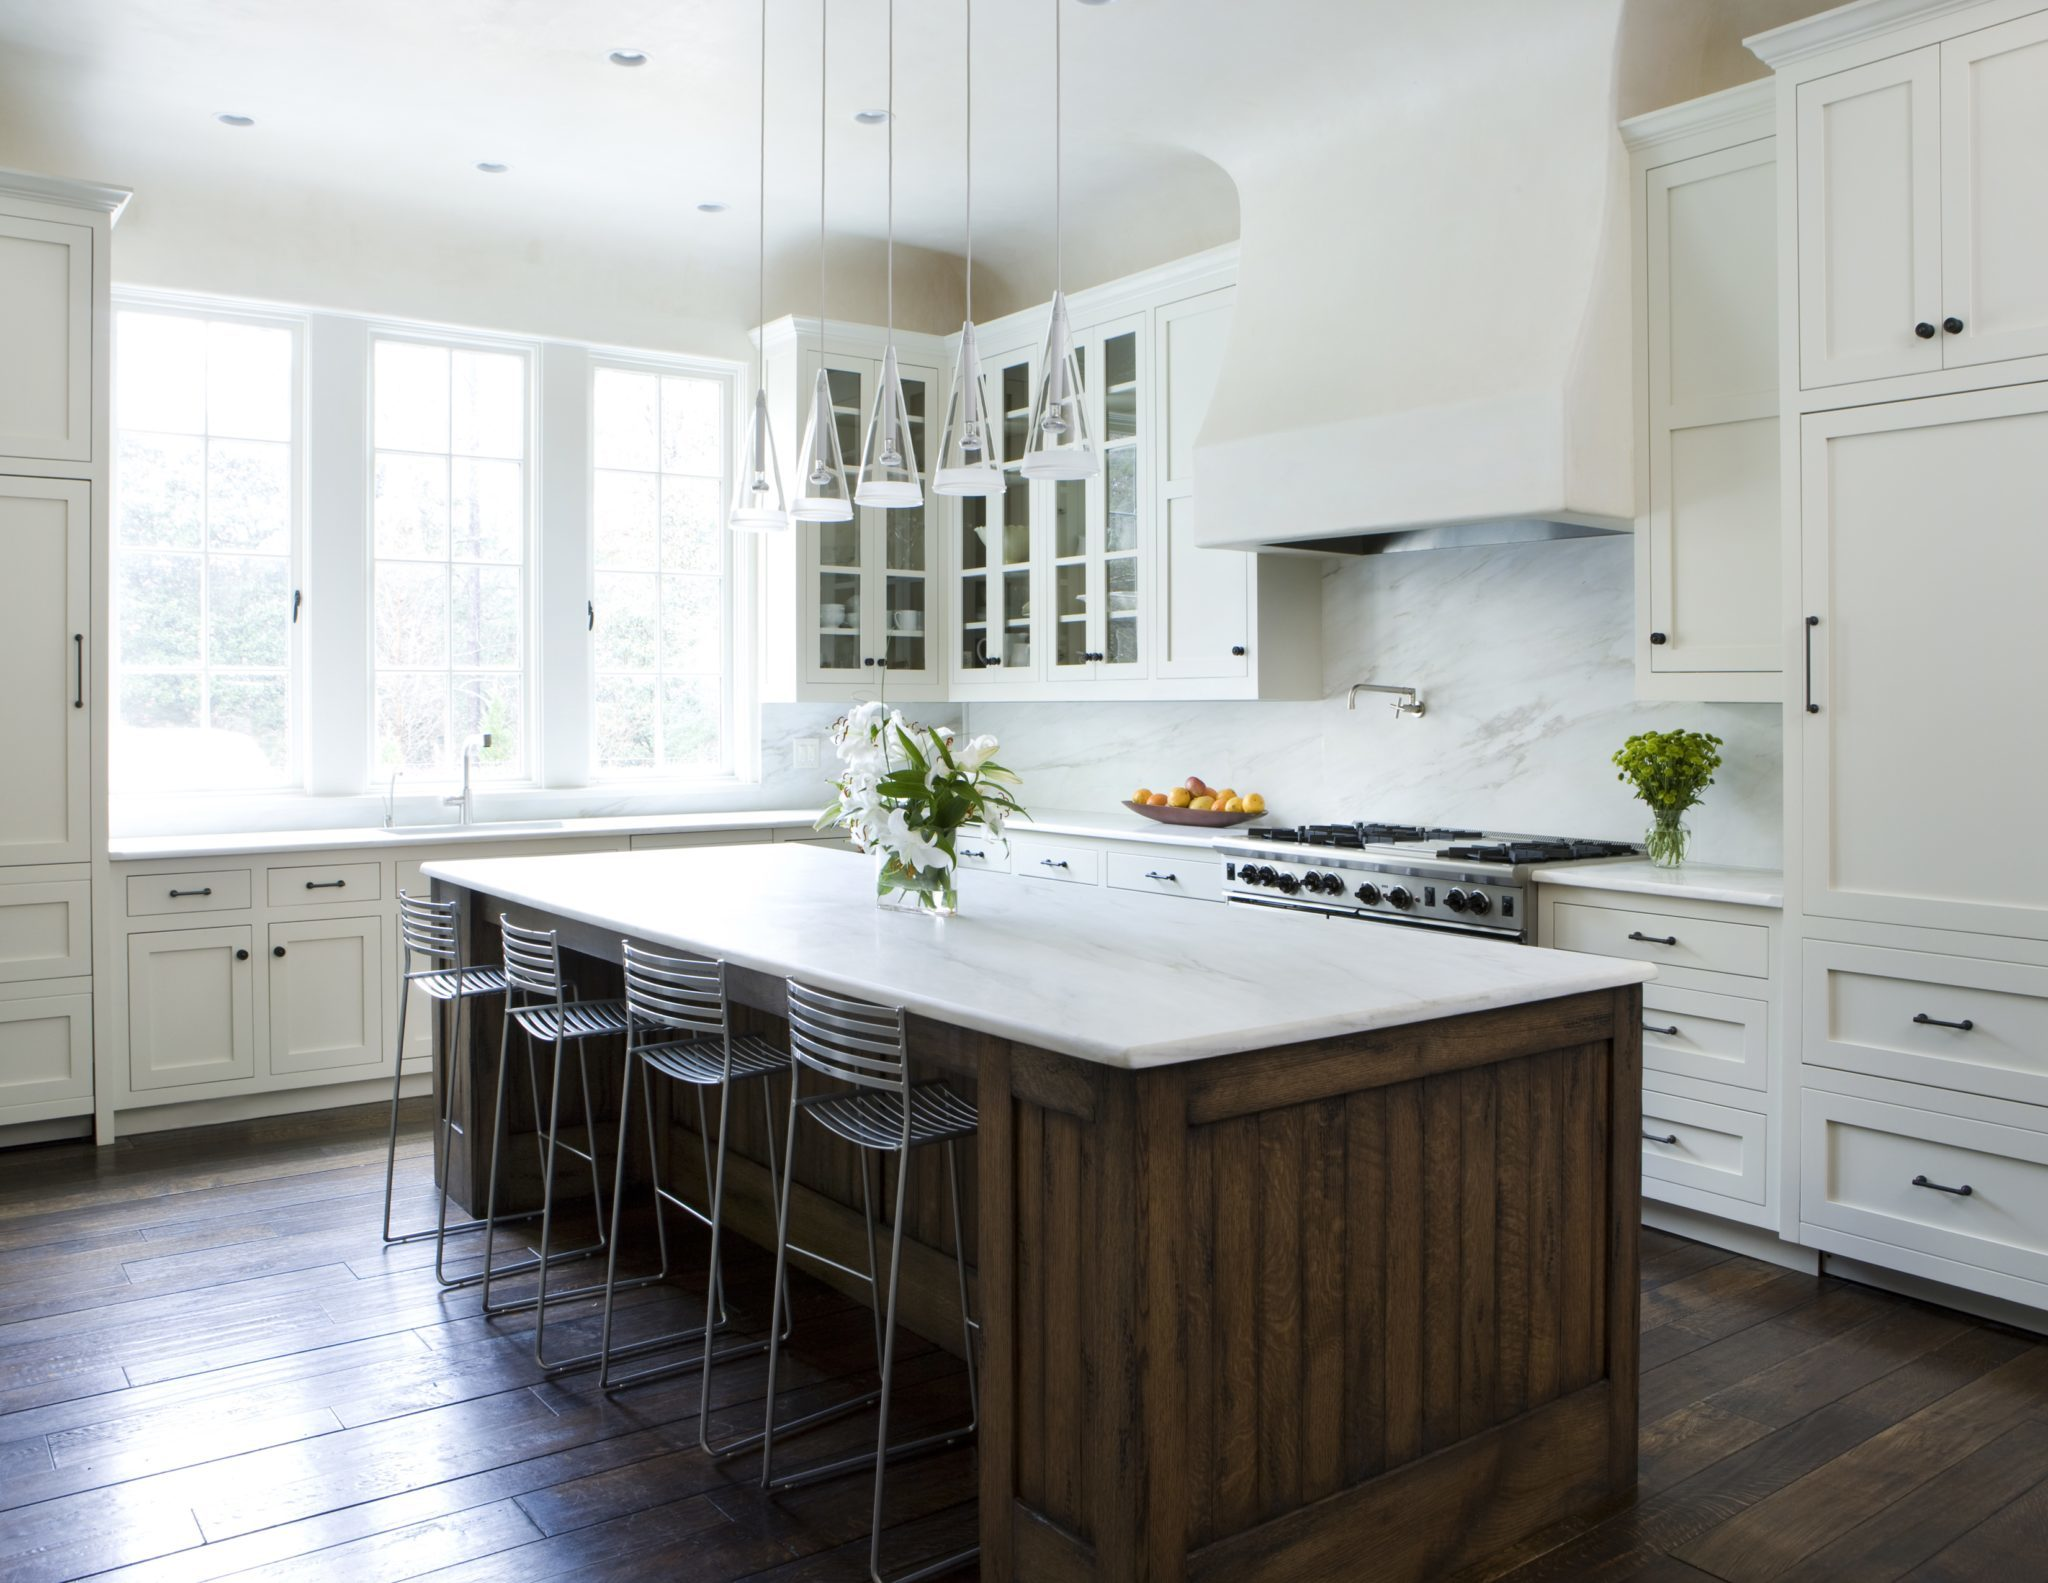 Large kitchen with wood floors and large island. By James Michael Howard